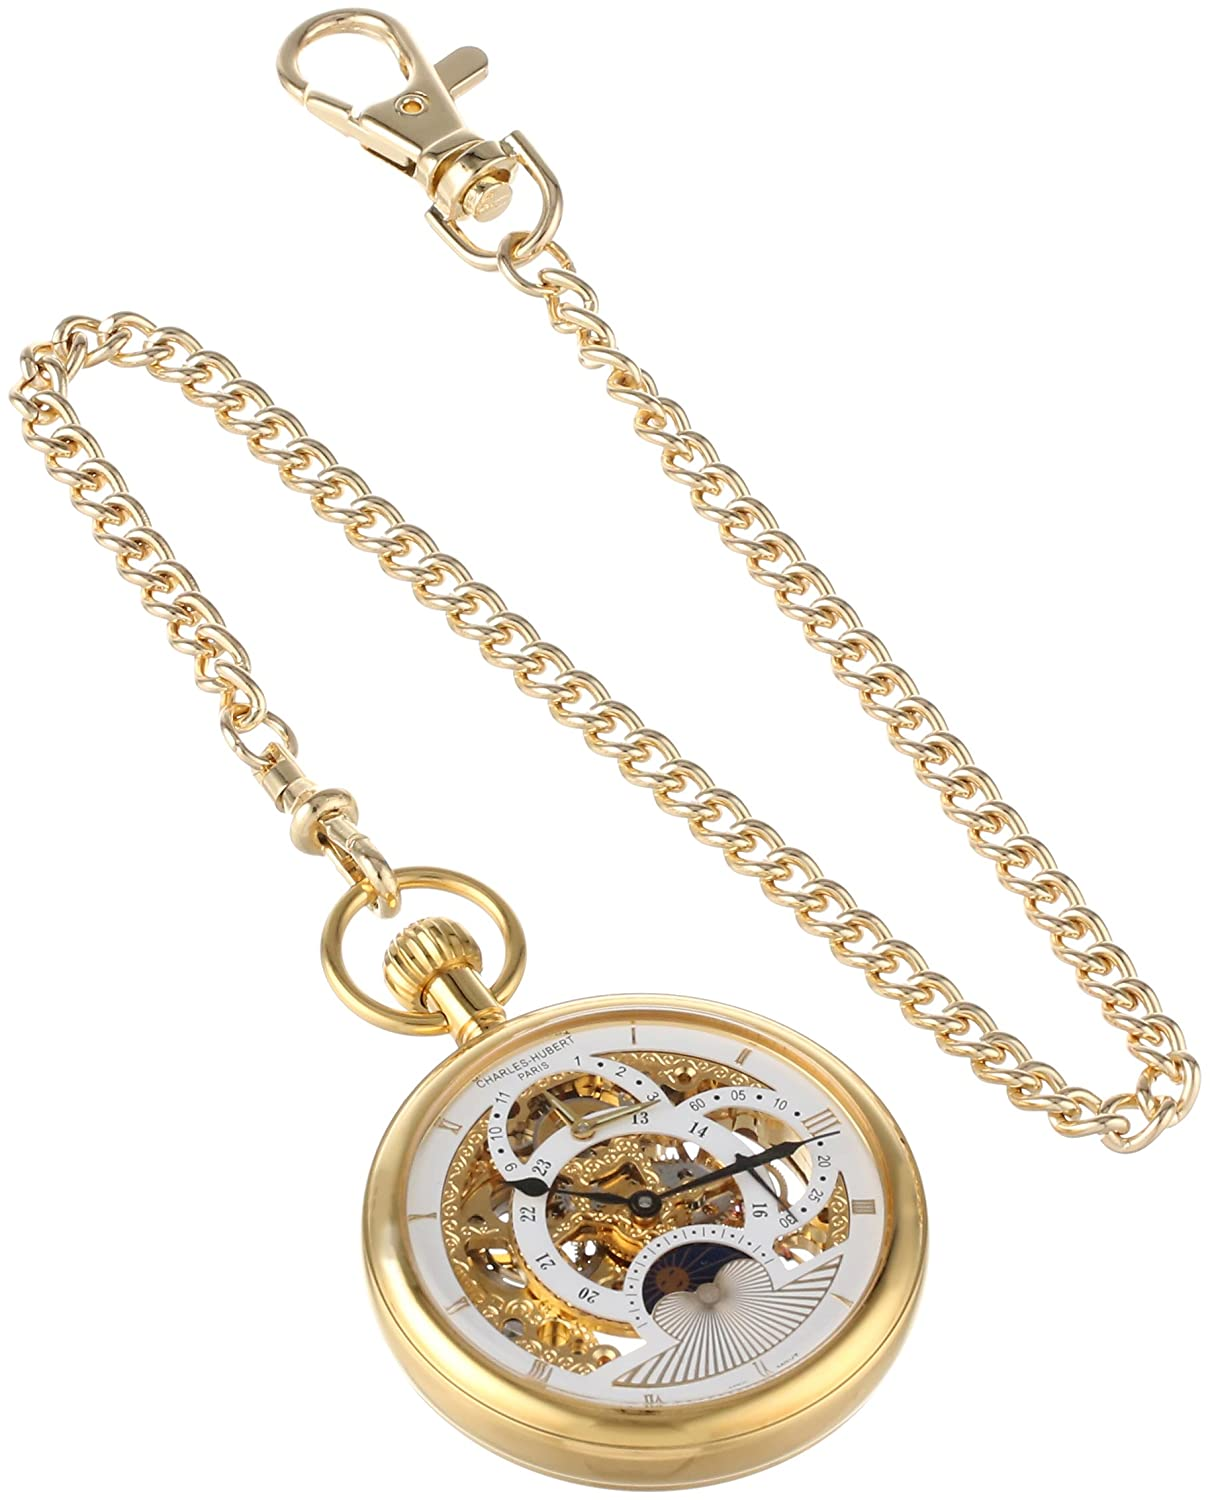 pendentif of crop watch upscale trends jewellery watches false scale hermes the subsampling pendant editor necklace return boule